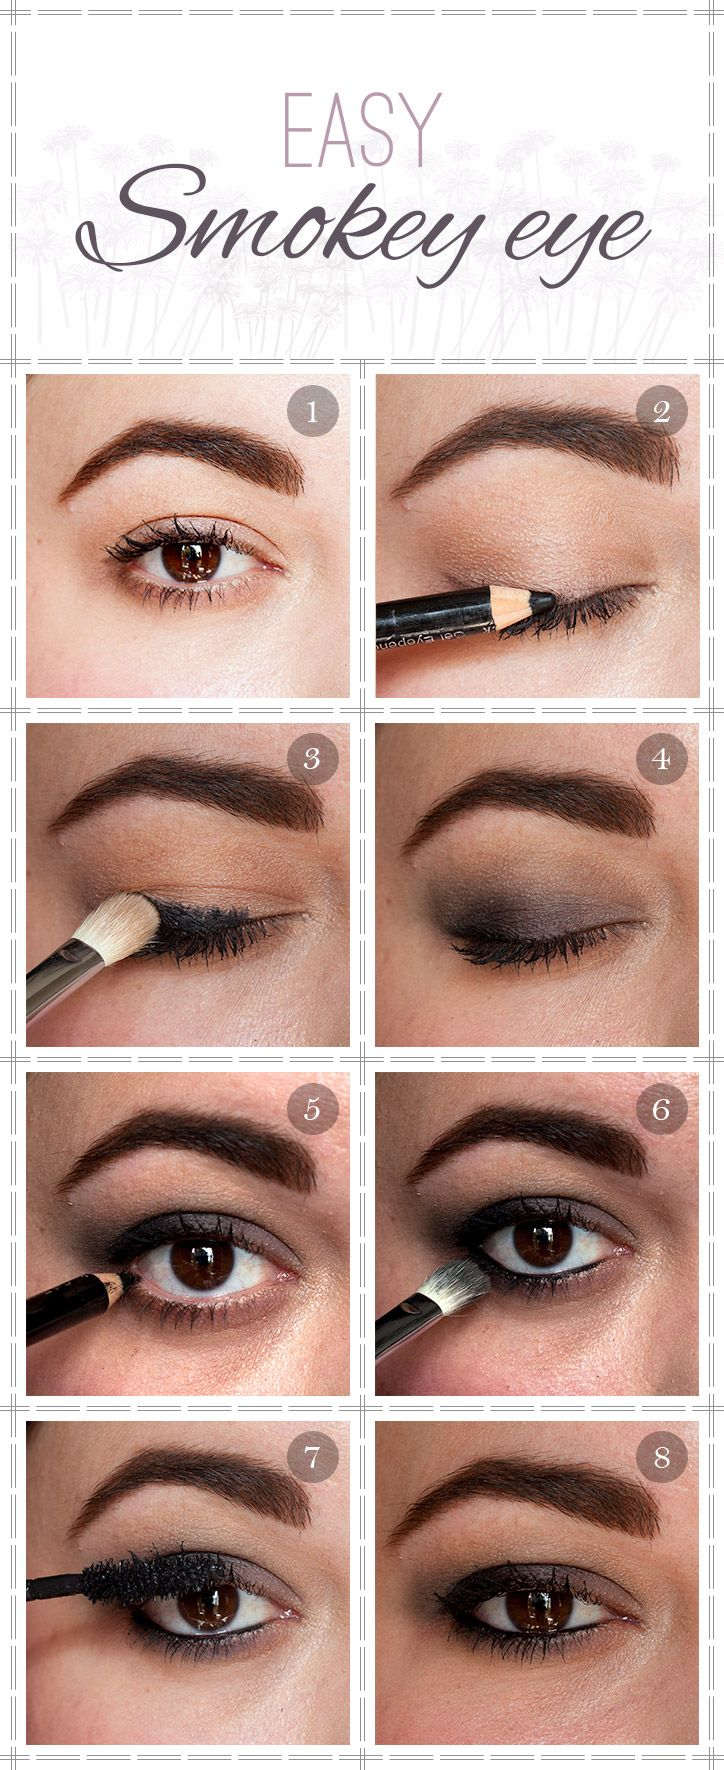 easy smokey eye tutorial | beauty | eye makeup designs